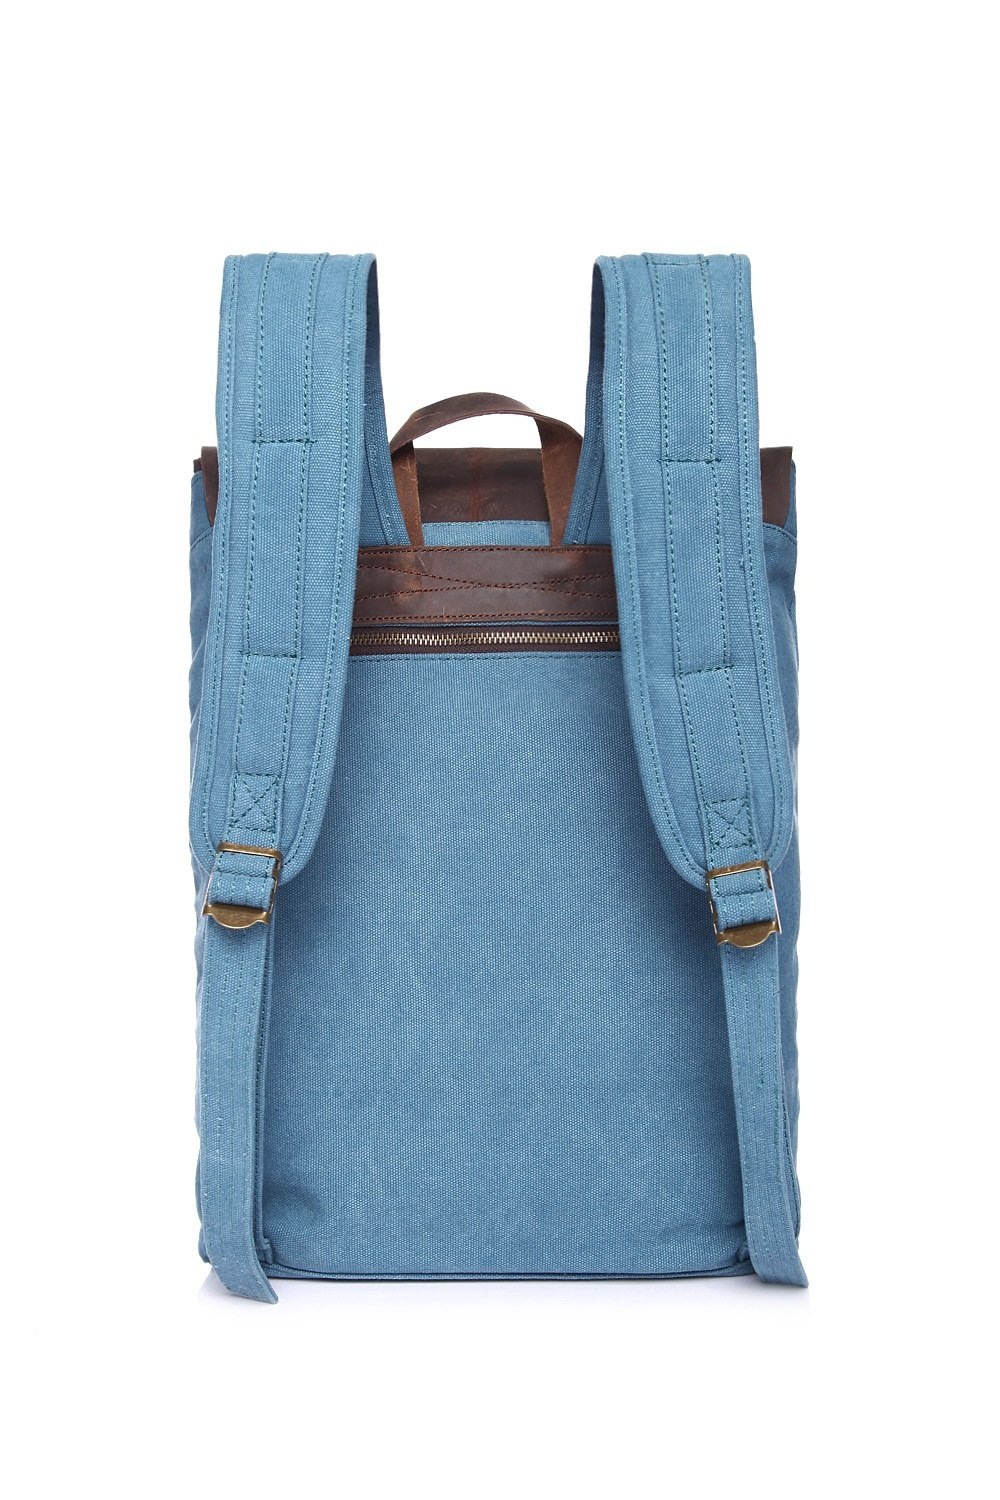 Color : Blue, Size : M DAYIYANG Special Design Mens Backpack Canvas Retro Student Backpack Fashion Travel Leisure Backpack